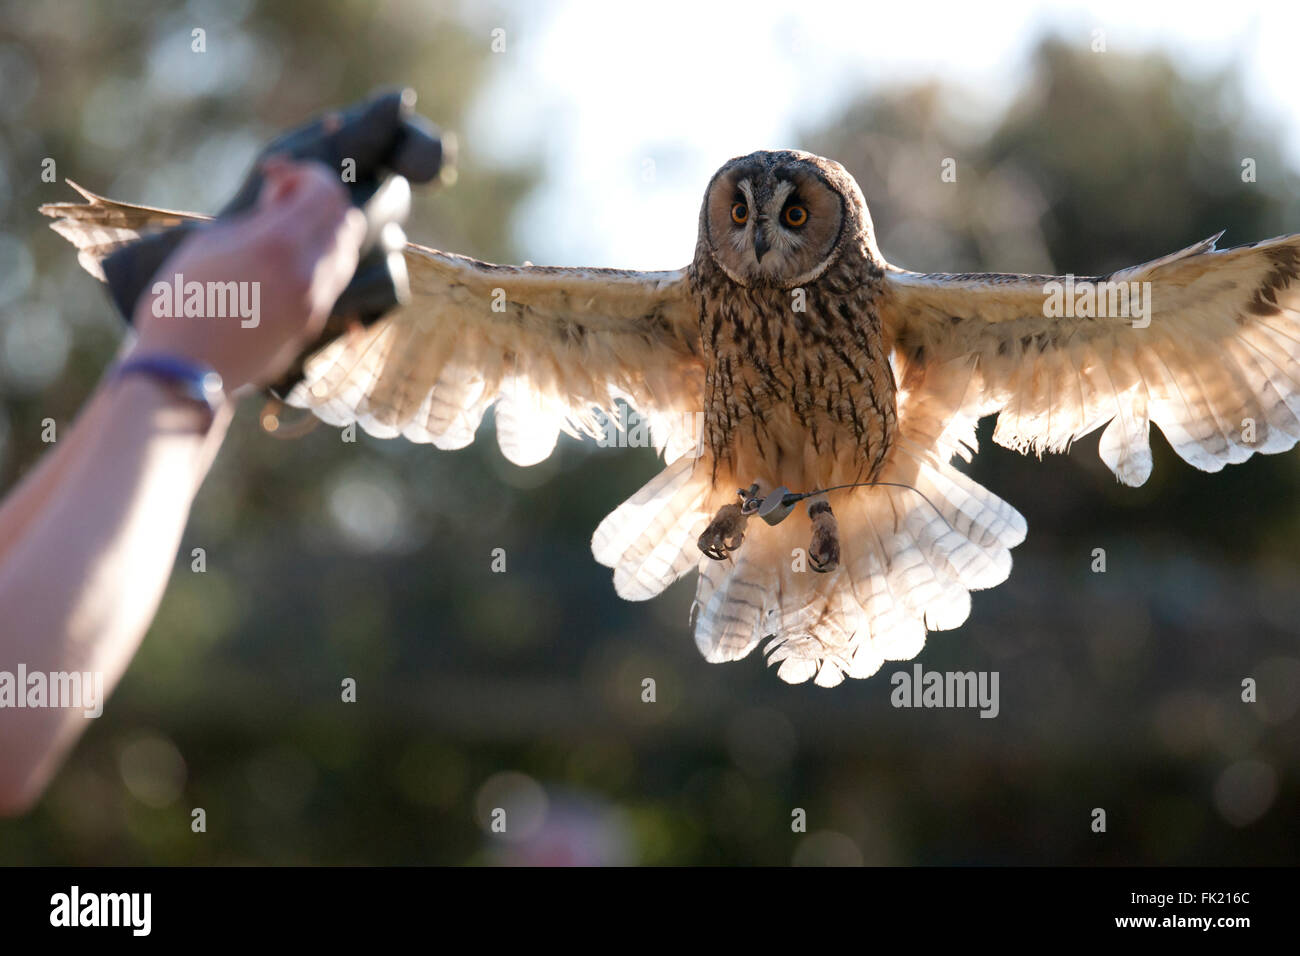 Long eared owl flying - Stock Image